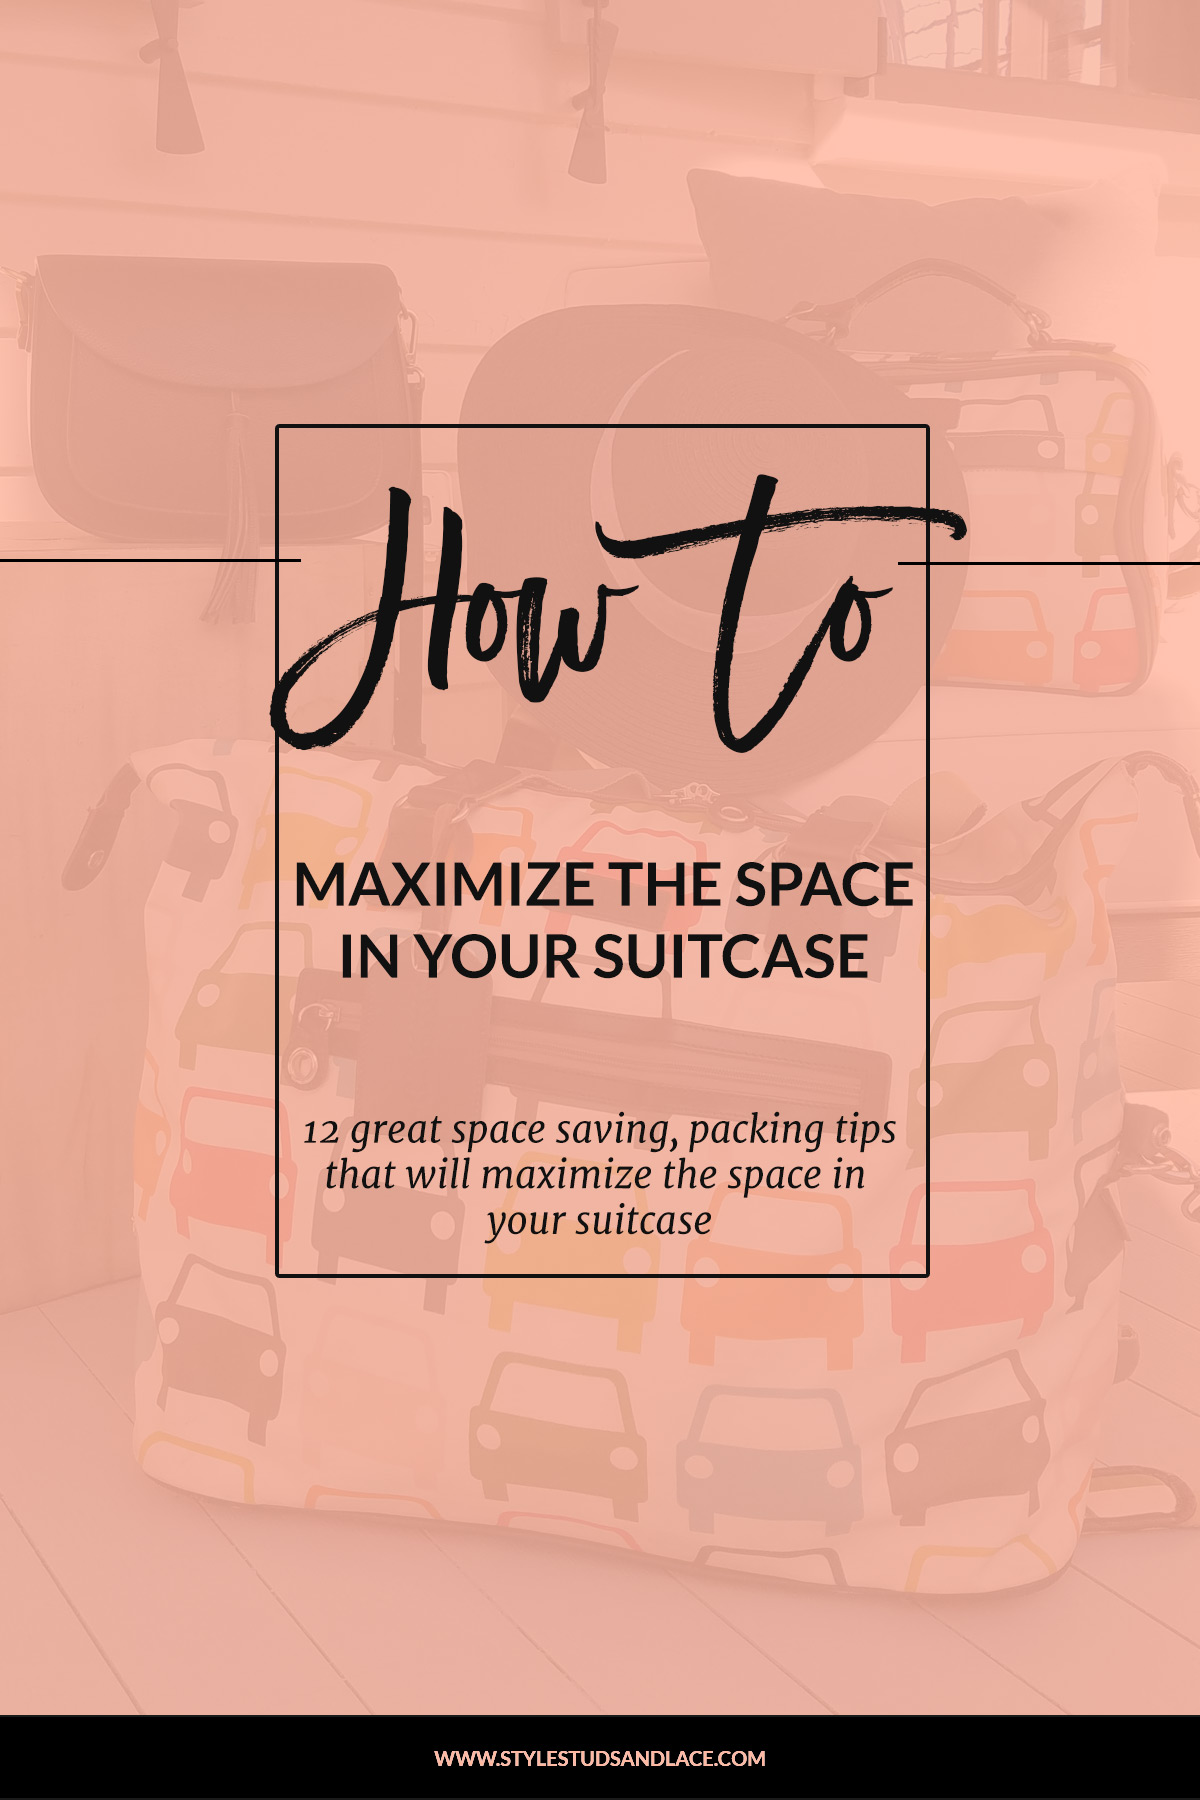 12 great packing tips that will maximize the space in your suitcase, protect your items and save you time when you arrive at your destination | How to pack efficiently for a vacation and save space in your luggage, and ensure that your items are in great condition when you unpack